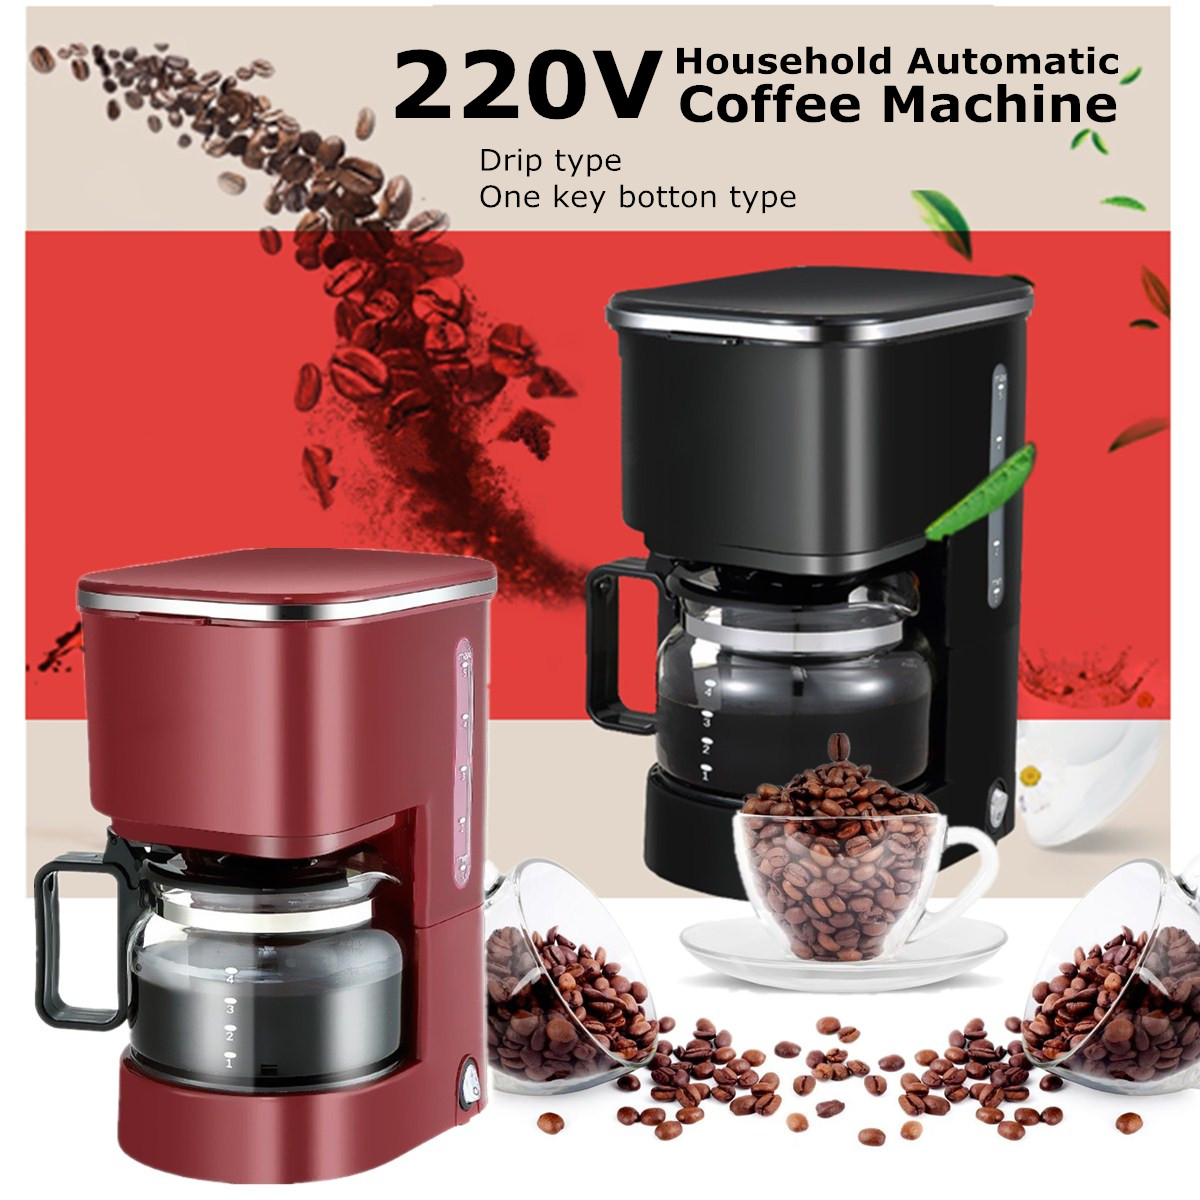 Automatic Drip Coffee Maker History : 220V 550W 750ml Household Fully Automatic Drip Americano Coffee Maker Machine eBay